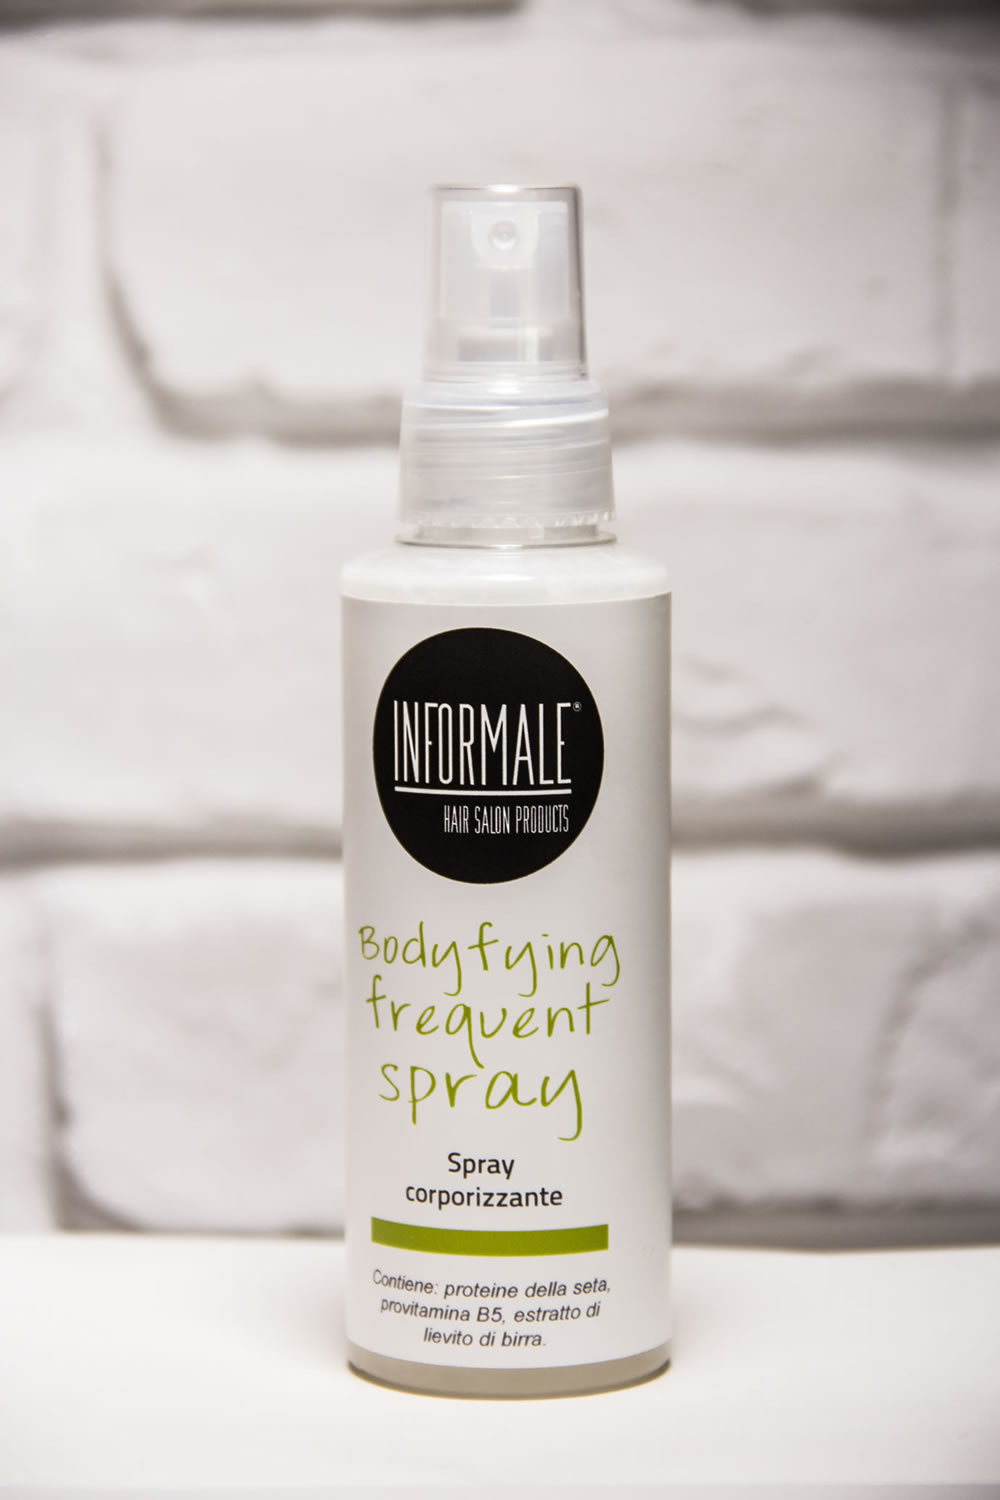 Bodyfing frequent spray